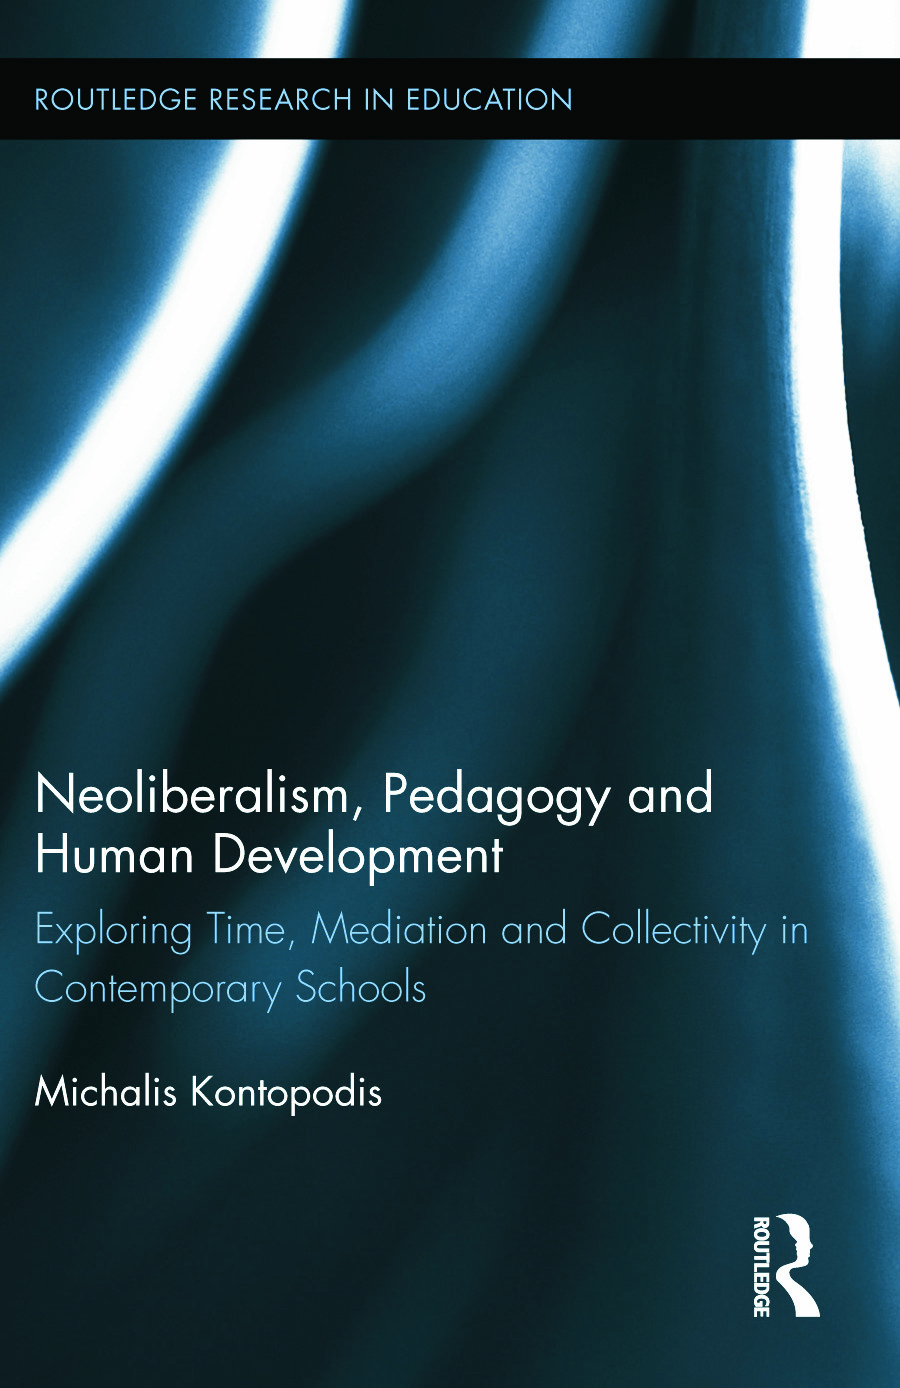 Neoliberalism, Pedagogy and Human Development: Exploring Time, Mediation and Collectivity in Contemporary Schools book cover